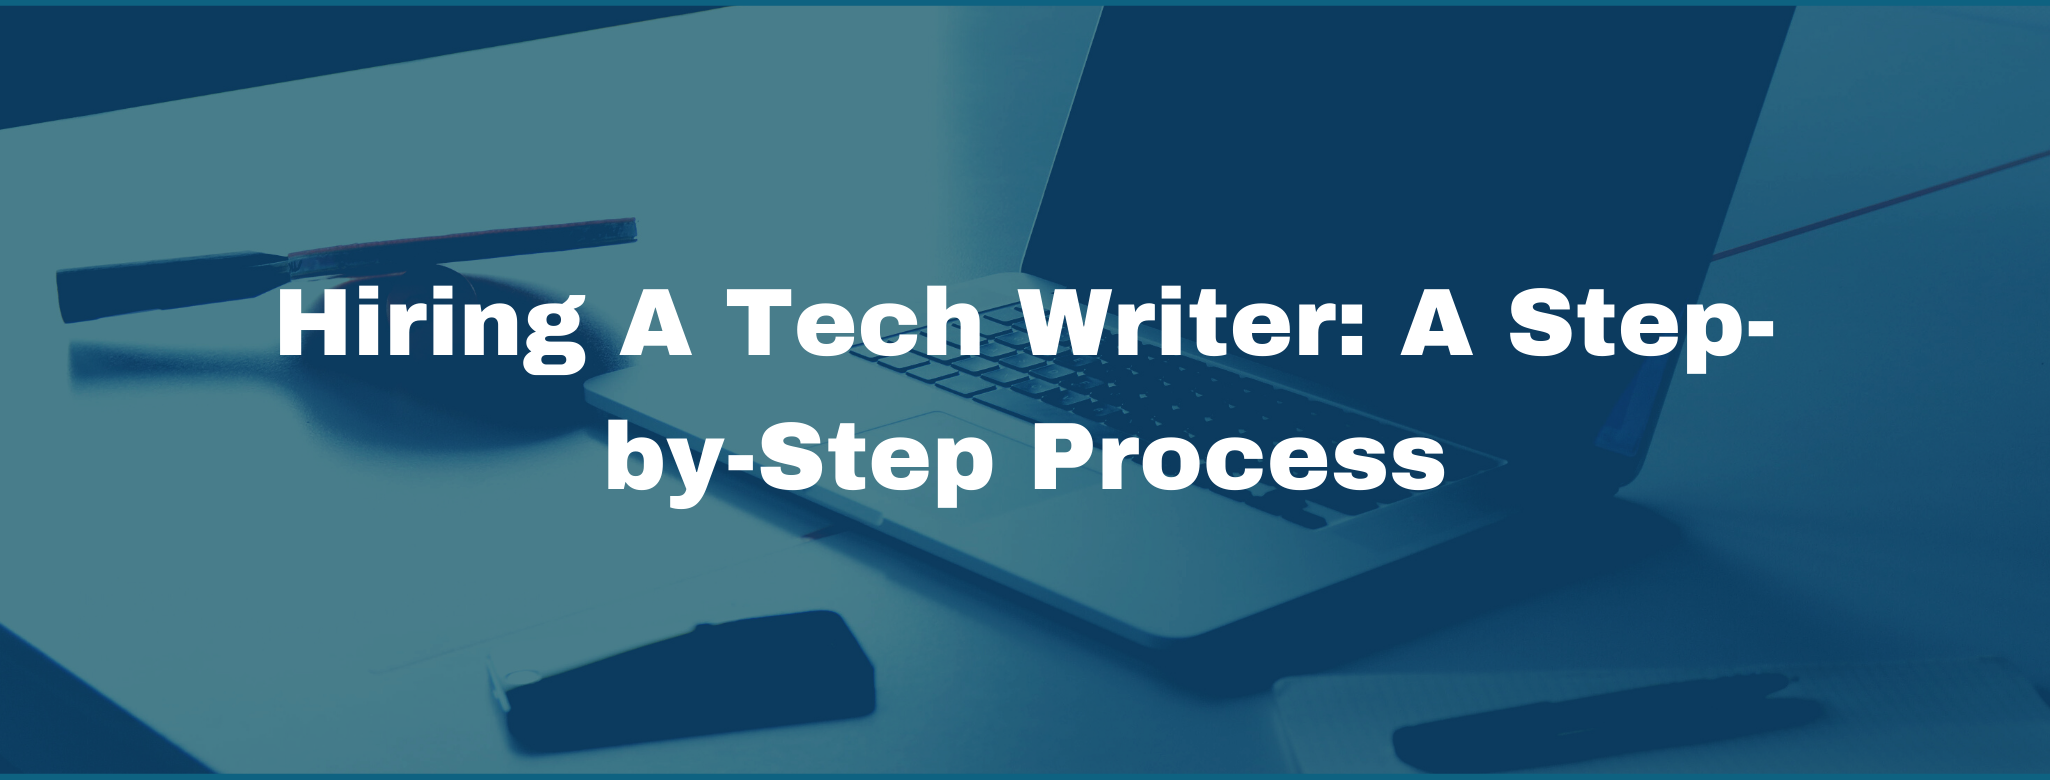 Hiring a Tech Writer: The Step-by-Step Guide